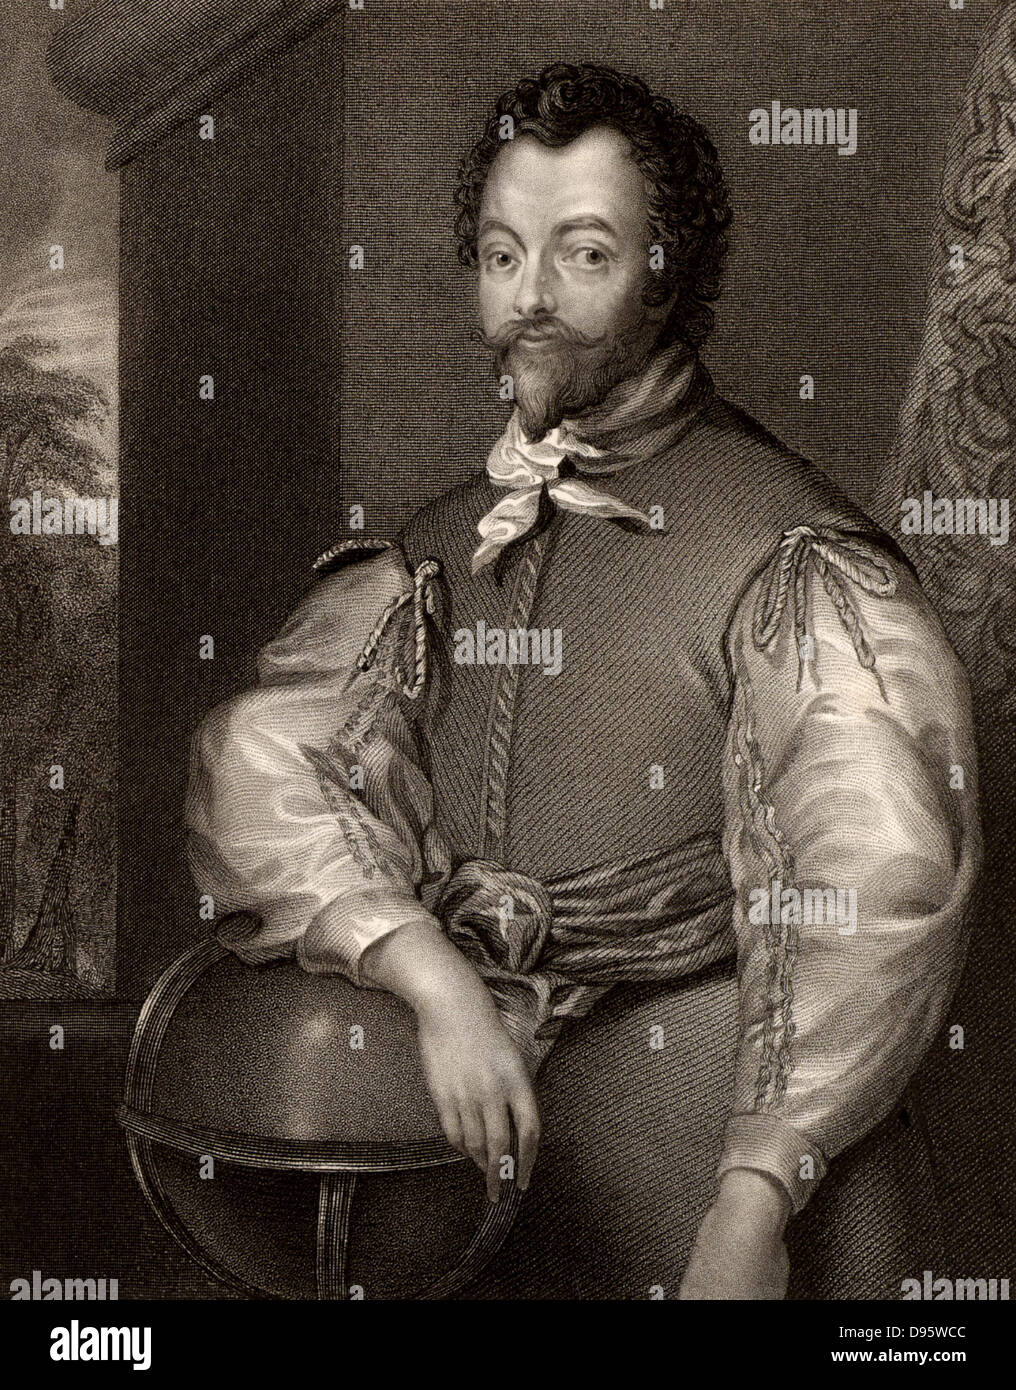 Francis Drake (c1540-1596) English navigator and privateer. Engraving from 'Portraits of Illustrious Personages - Stock Image